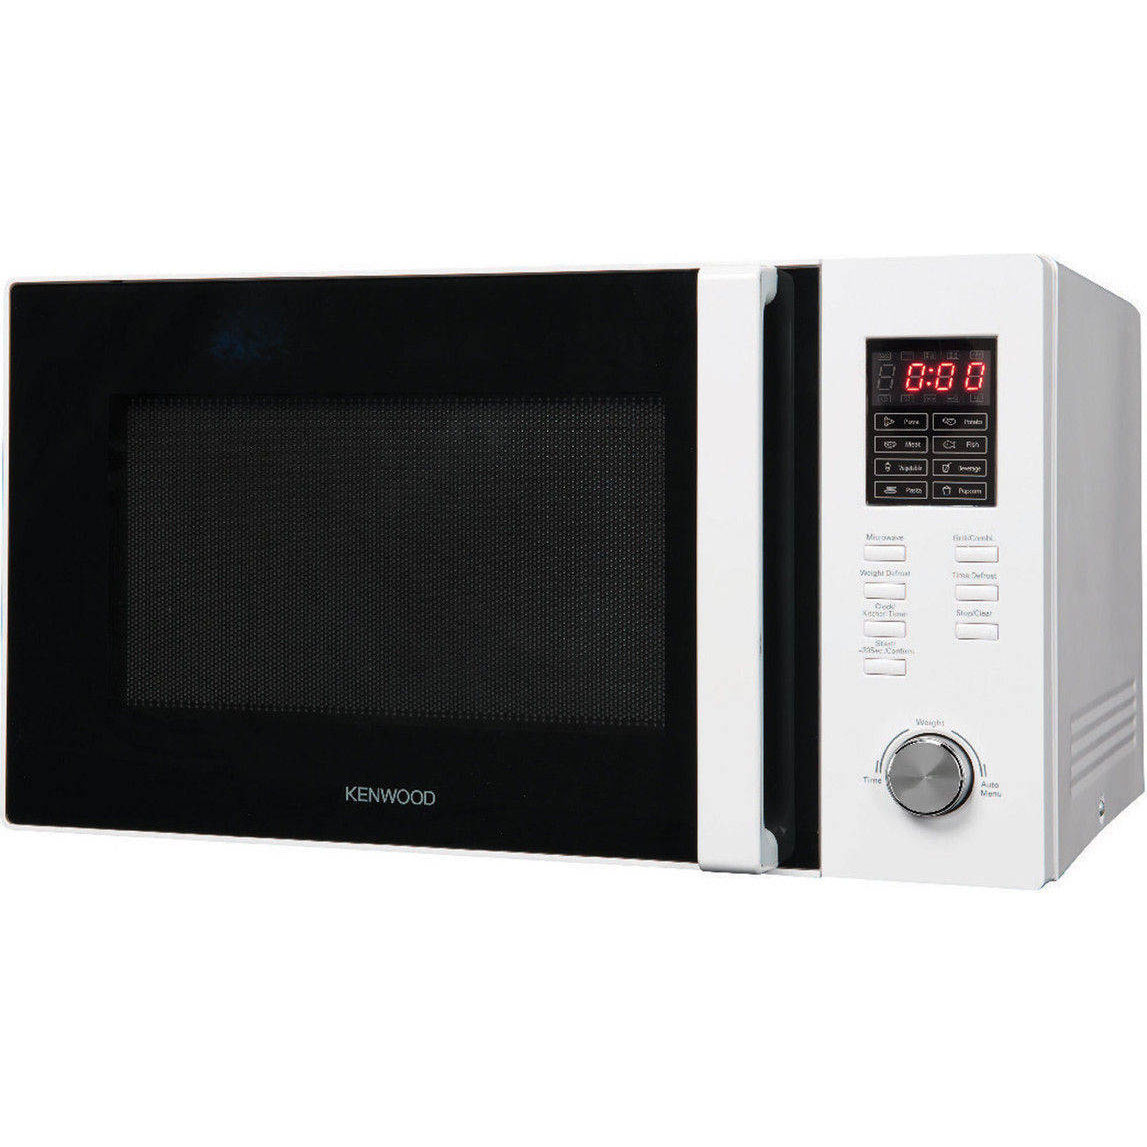 Kenwood MWL220 Microwave Oven - White